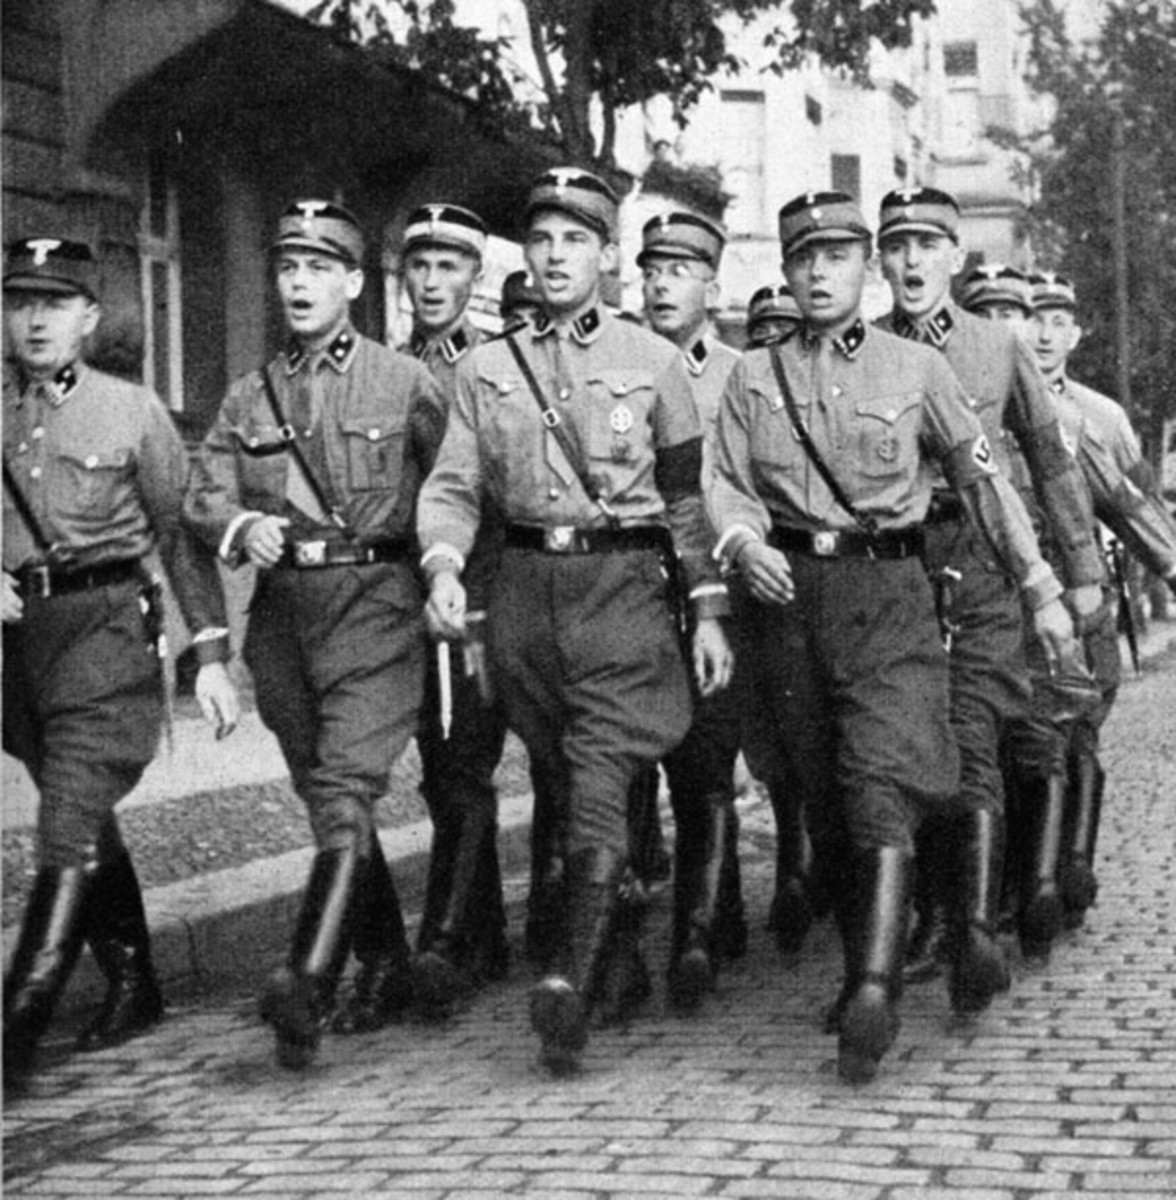 The strong arm of the Nazi party during their early years, next to Hitler himself, the Brownshirts were the face of Nazism ideology and brutality.